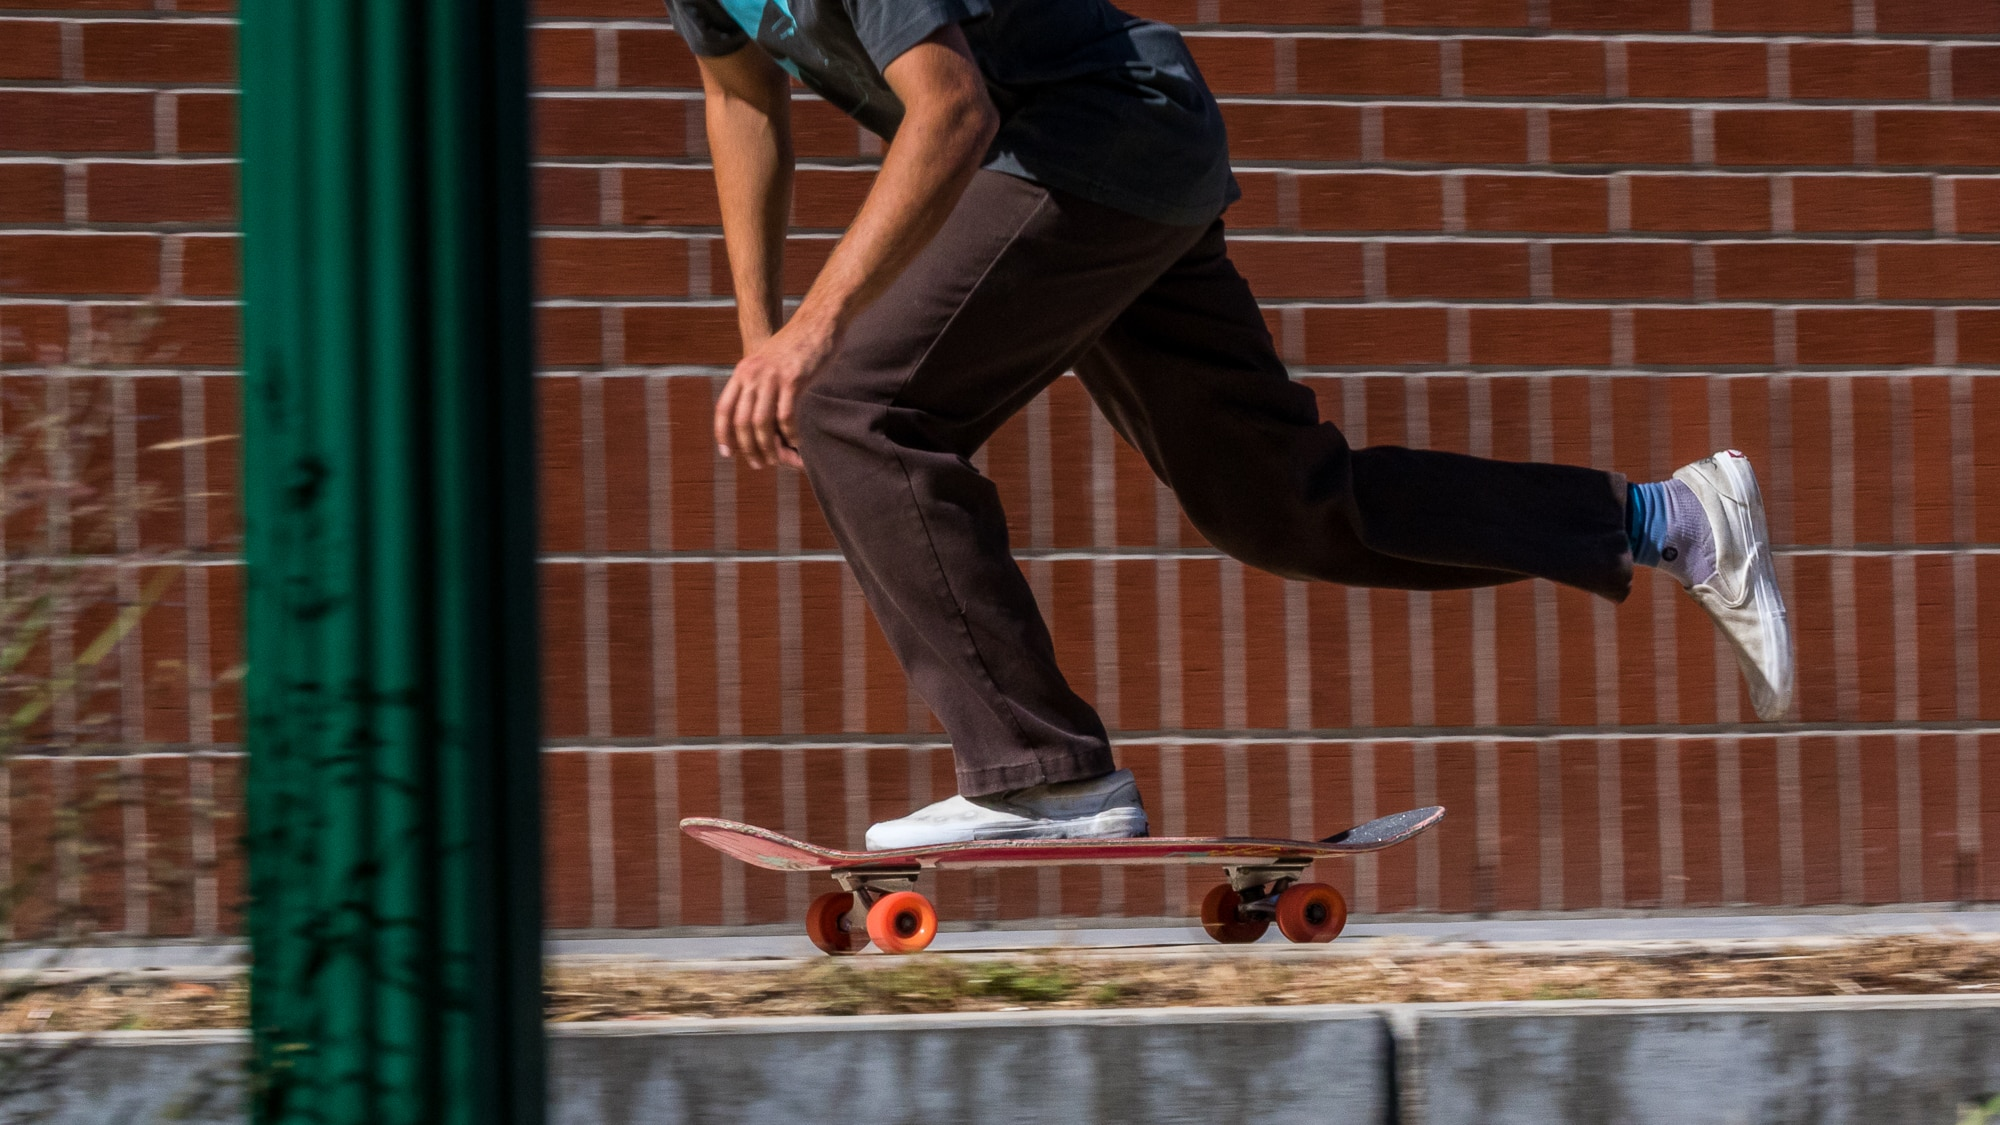 How To Skateboard Tactics